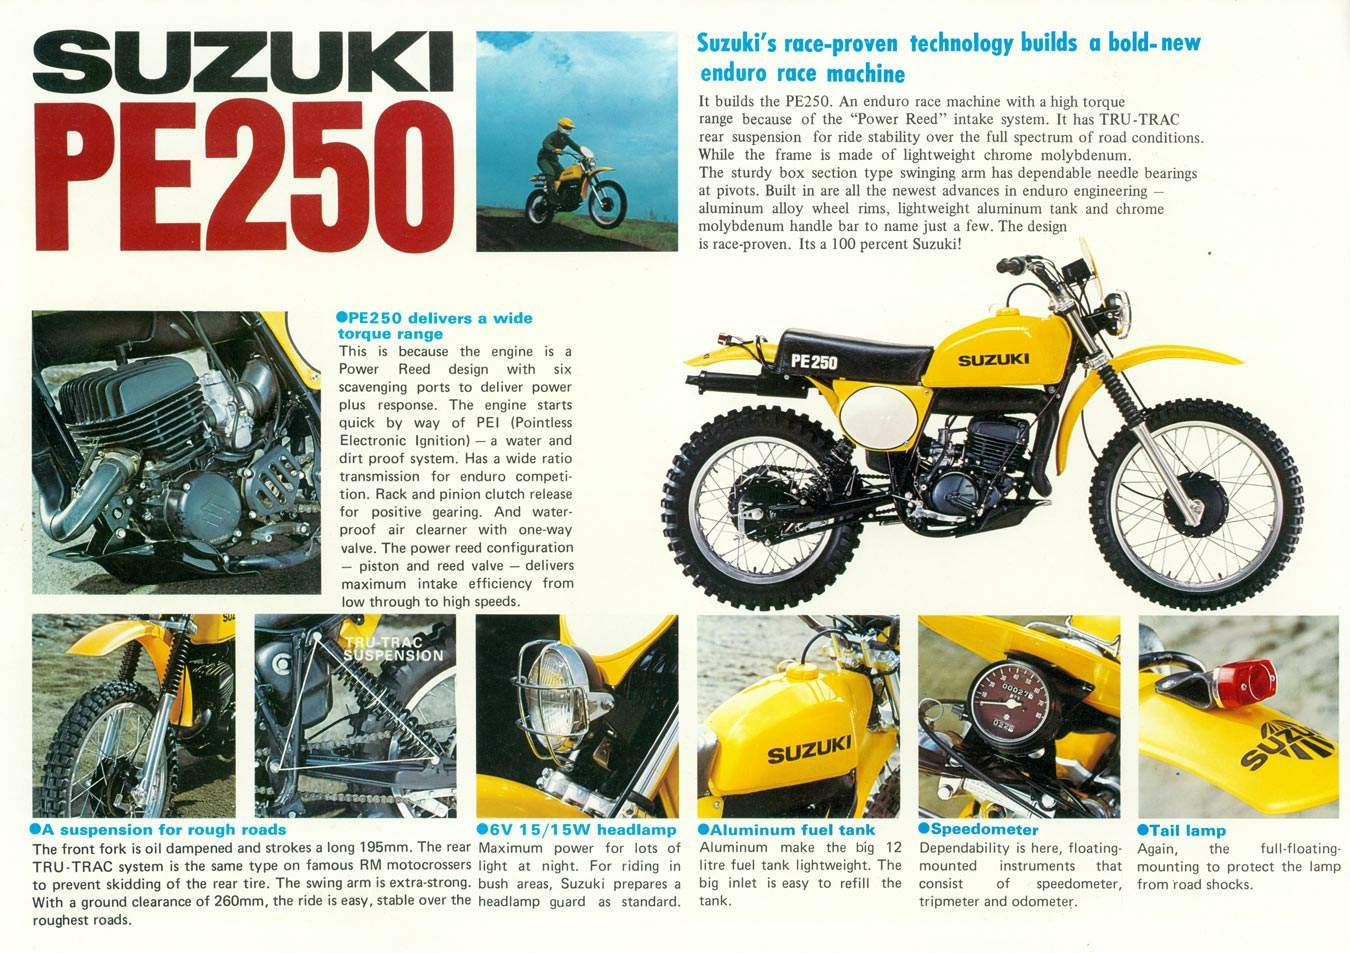 Suzuki Pe 250 Trail Bikes There Are Some Which Inspire Awe And Others Generate Loathing Mainly Though Motorcycles Memorable Merely Because They Solidly